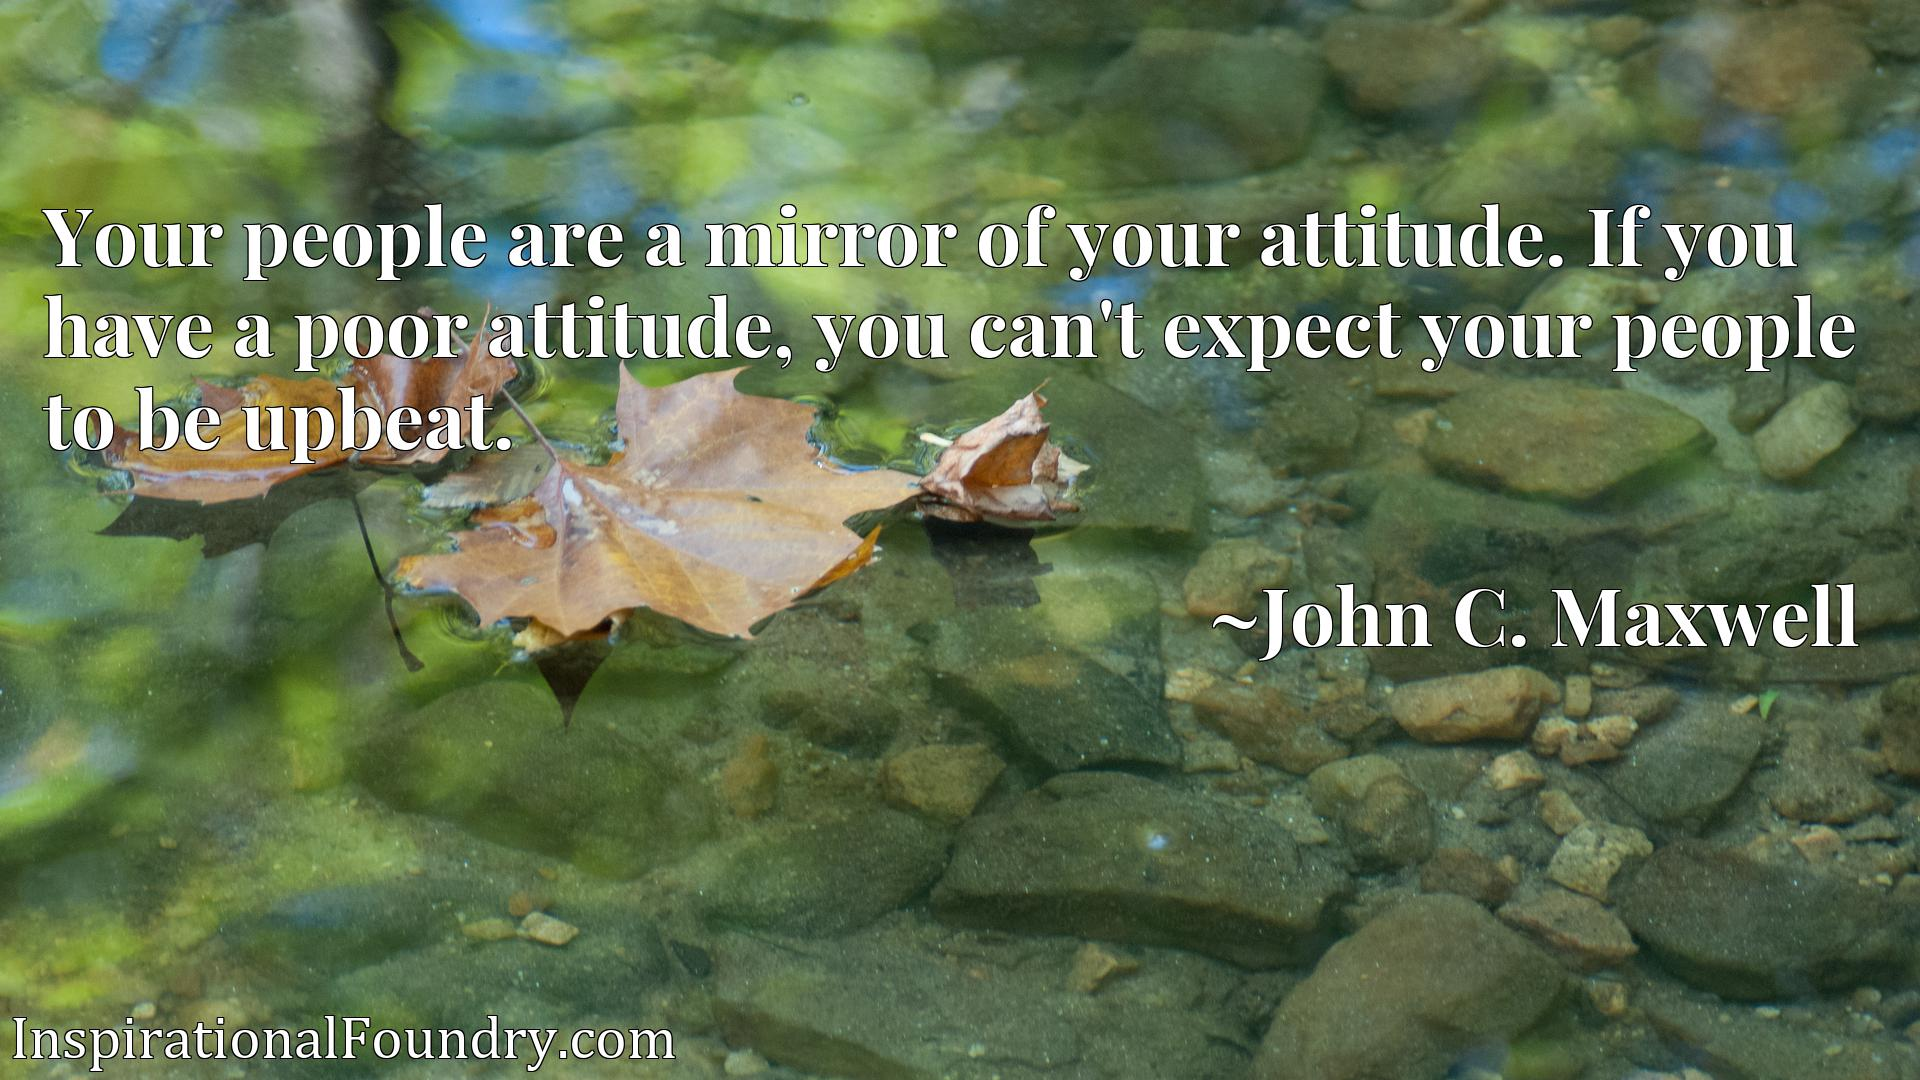 Your people are a mirror of your attitude. If you have a poor attitude, you can't expect your people to be upbeat.